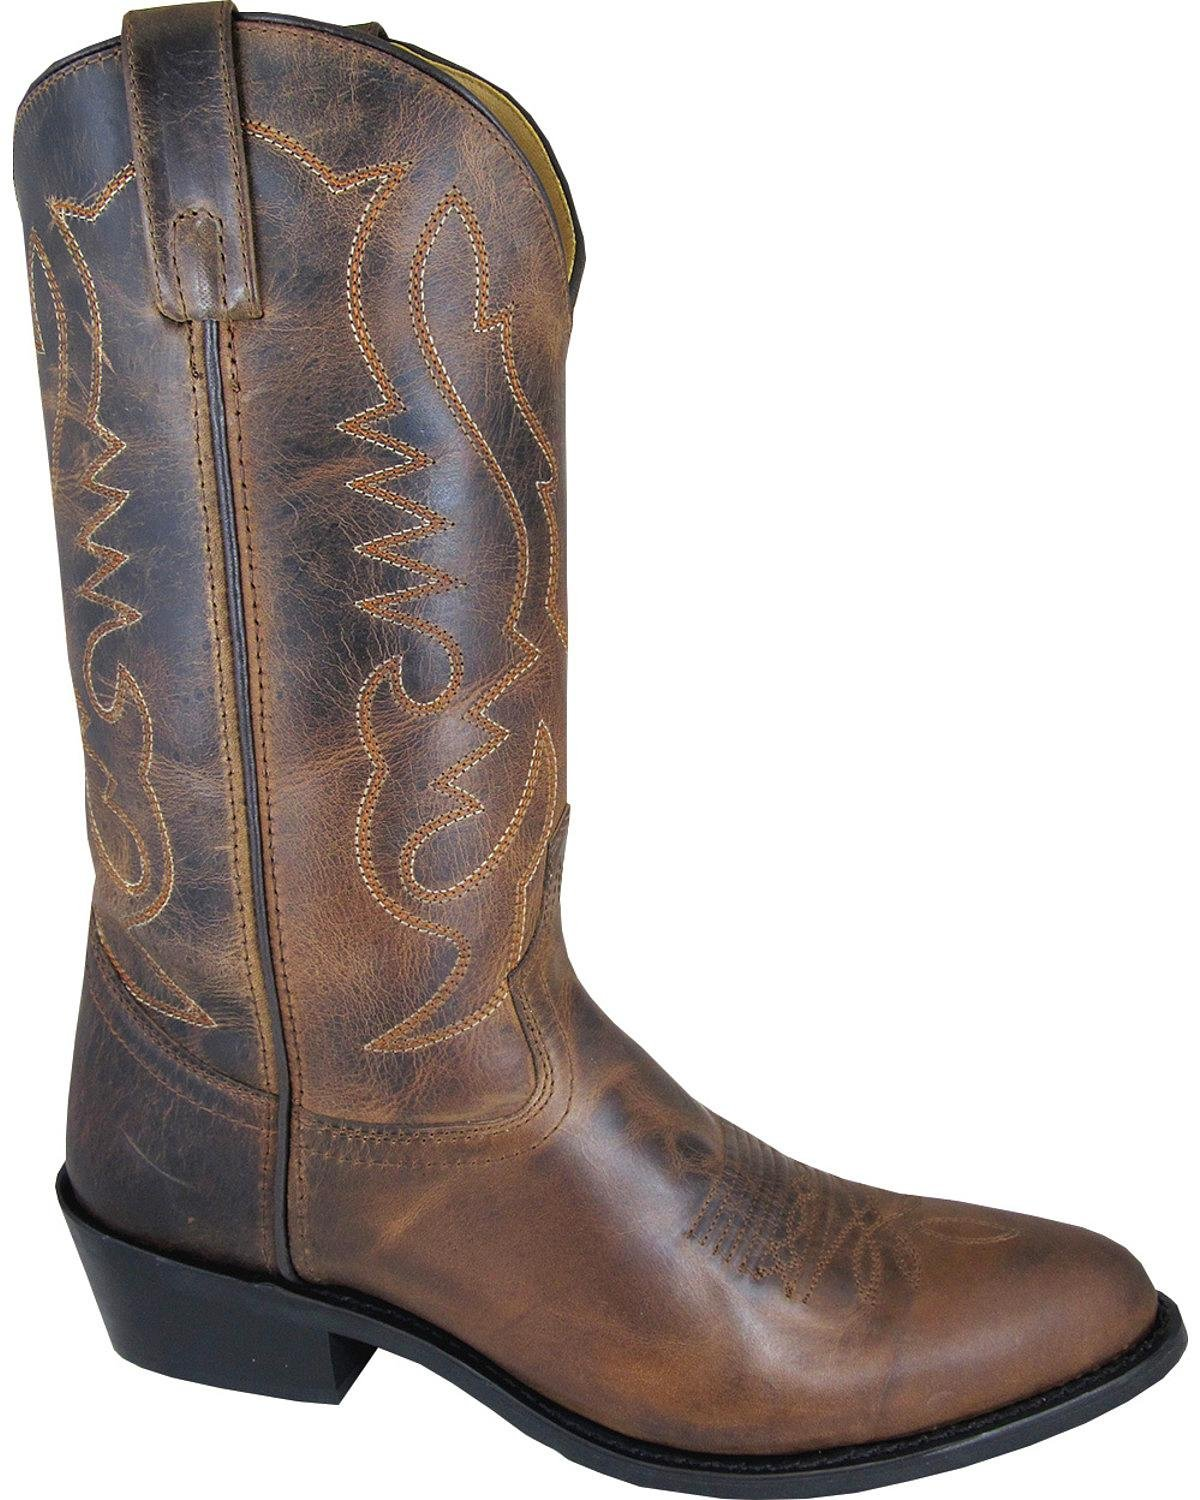 Smoky Mountain Men's Denver Cowboy Boot Round Toe Brown 13 D(M) US